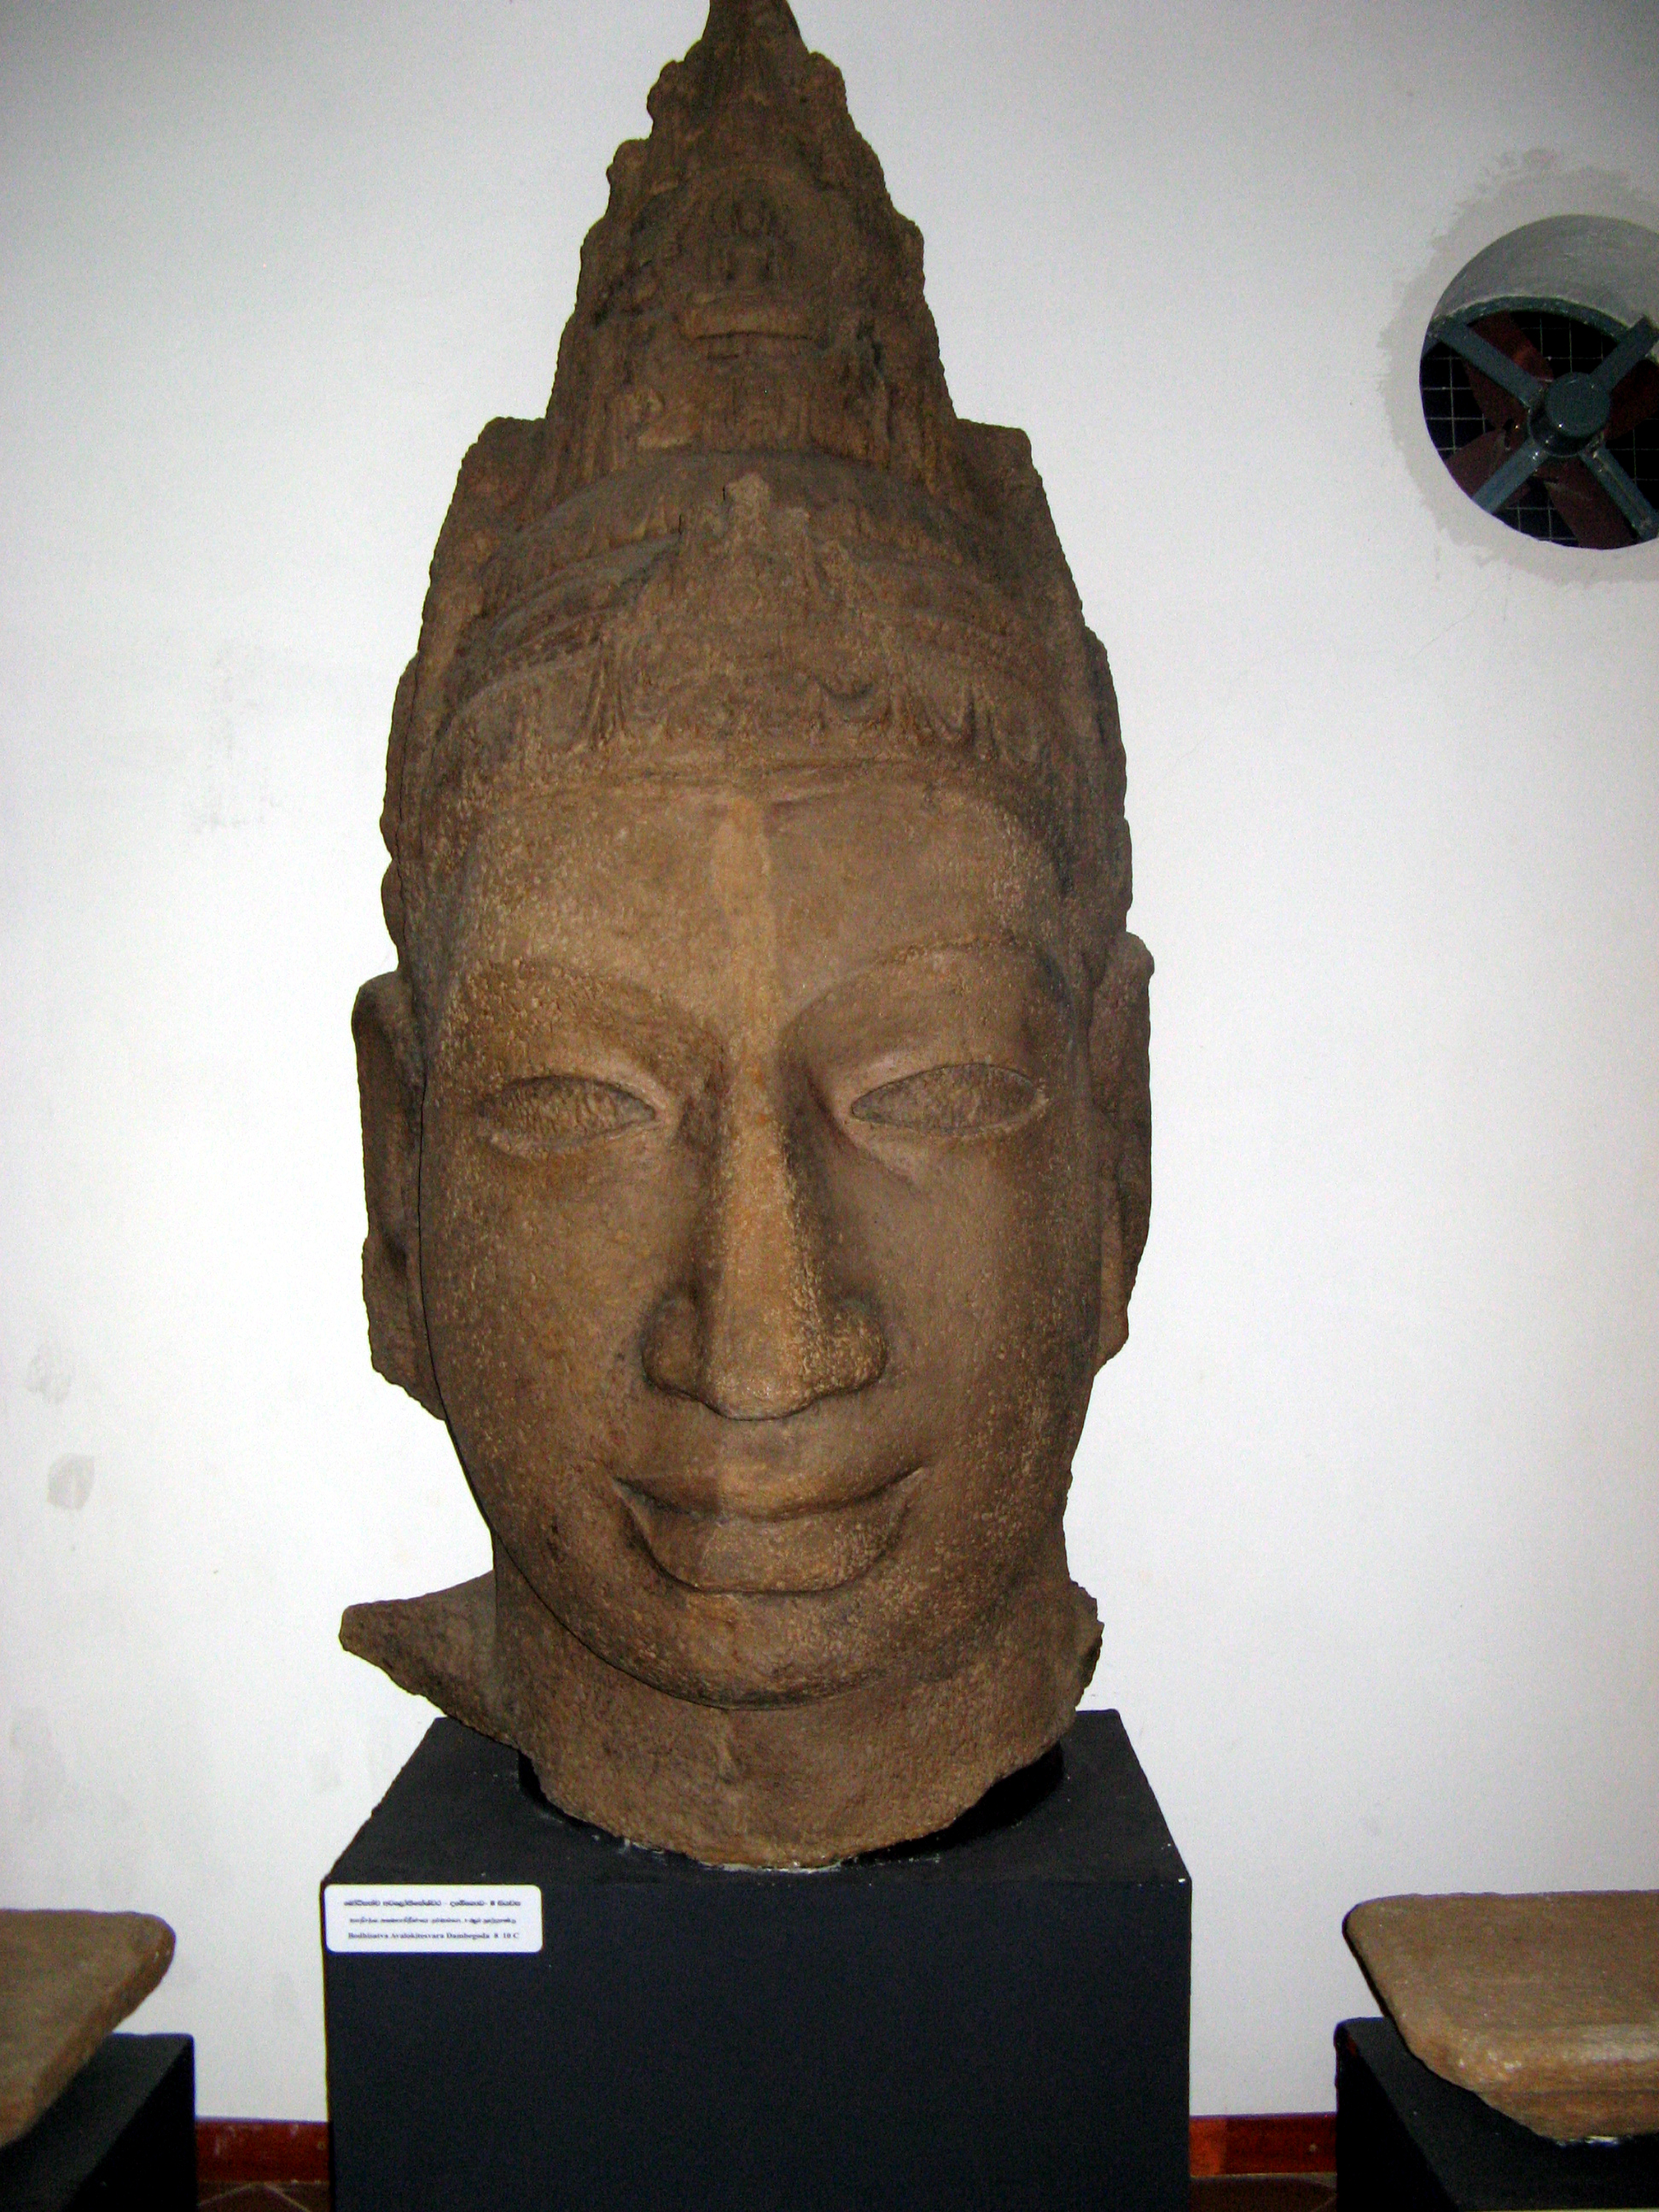 This Avalokiteshvara's head was found in Dambegoda, near the border of Yala National Park, in Sri Lanka. The image was dated between the 8th and 10th century.